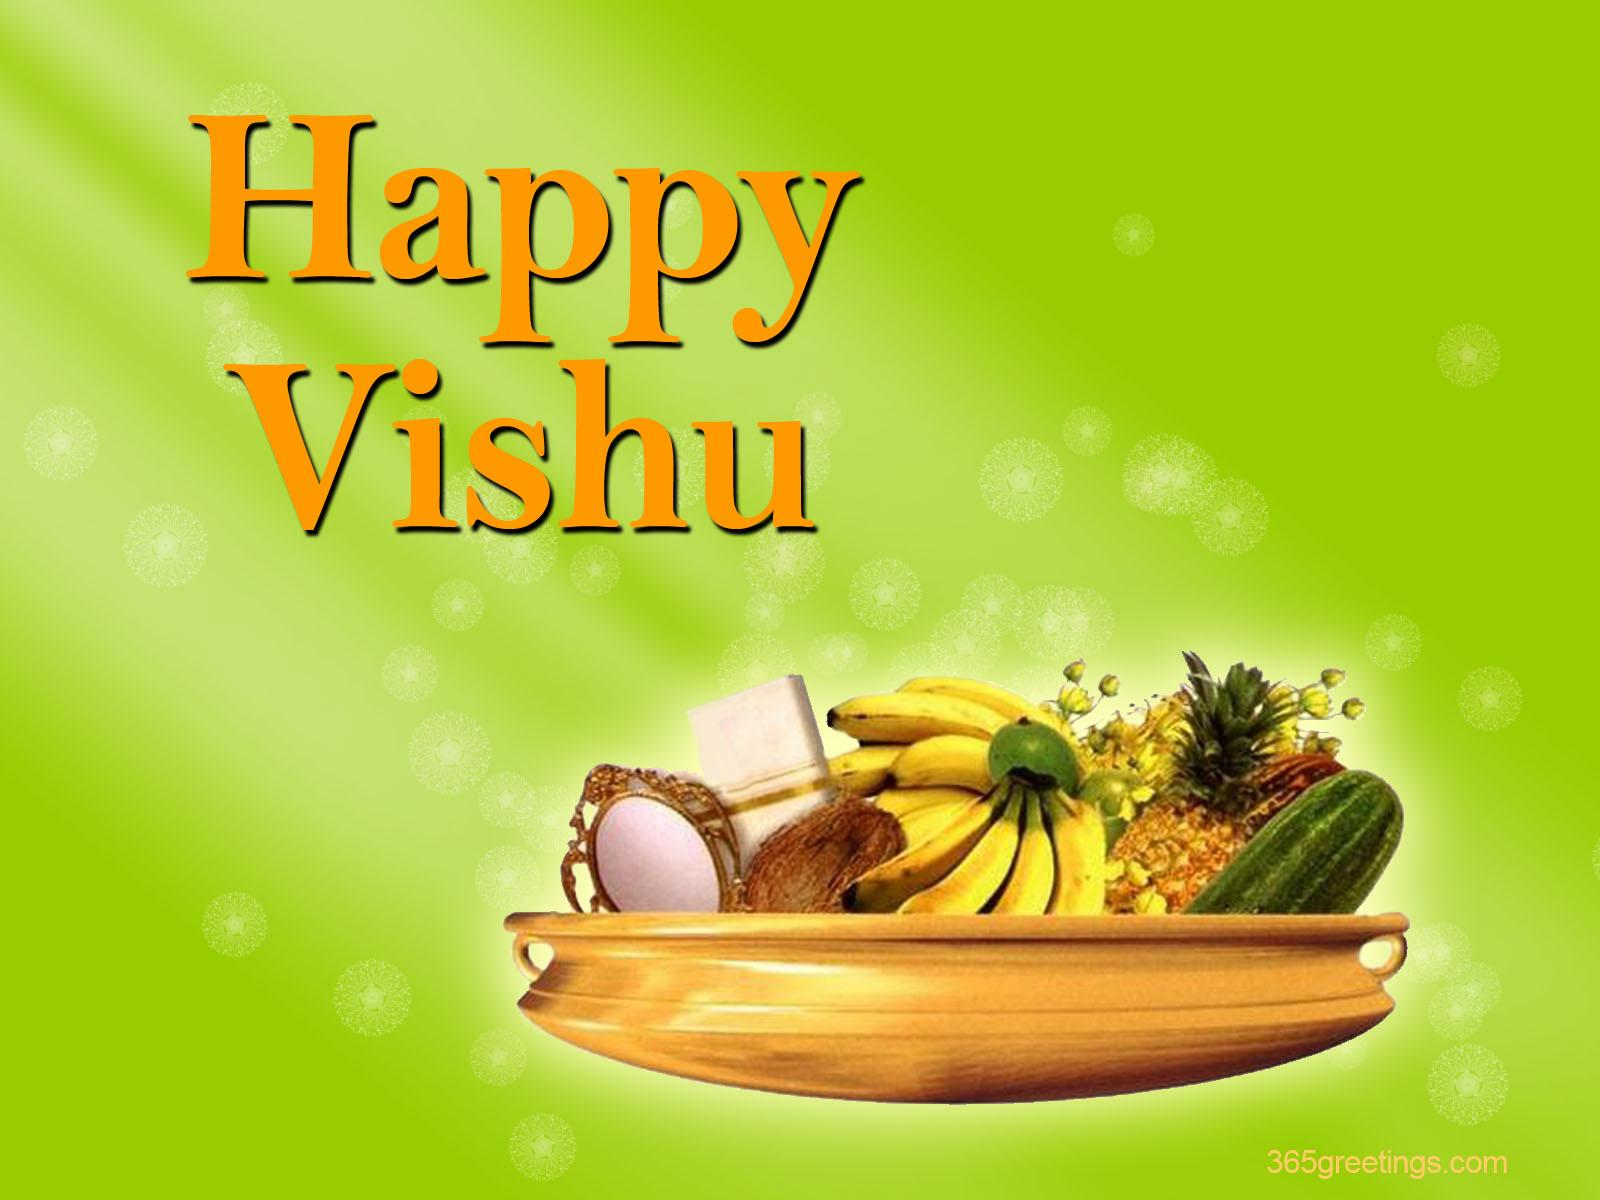 Vishu Is An Auspicious Occasion In Malayaleess Life A Symbol Of Prosperity And Mirthful It Marks The New Year Accordance With Malayalam